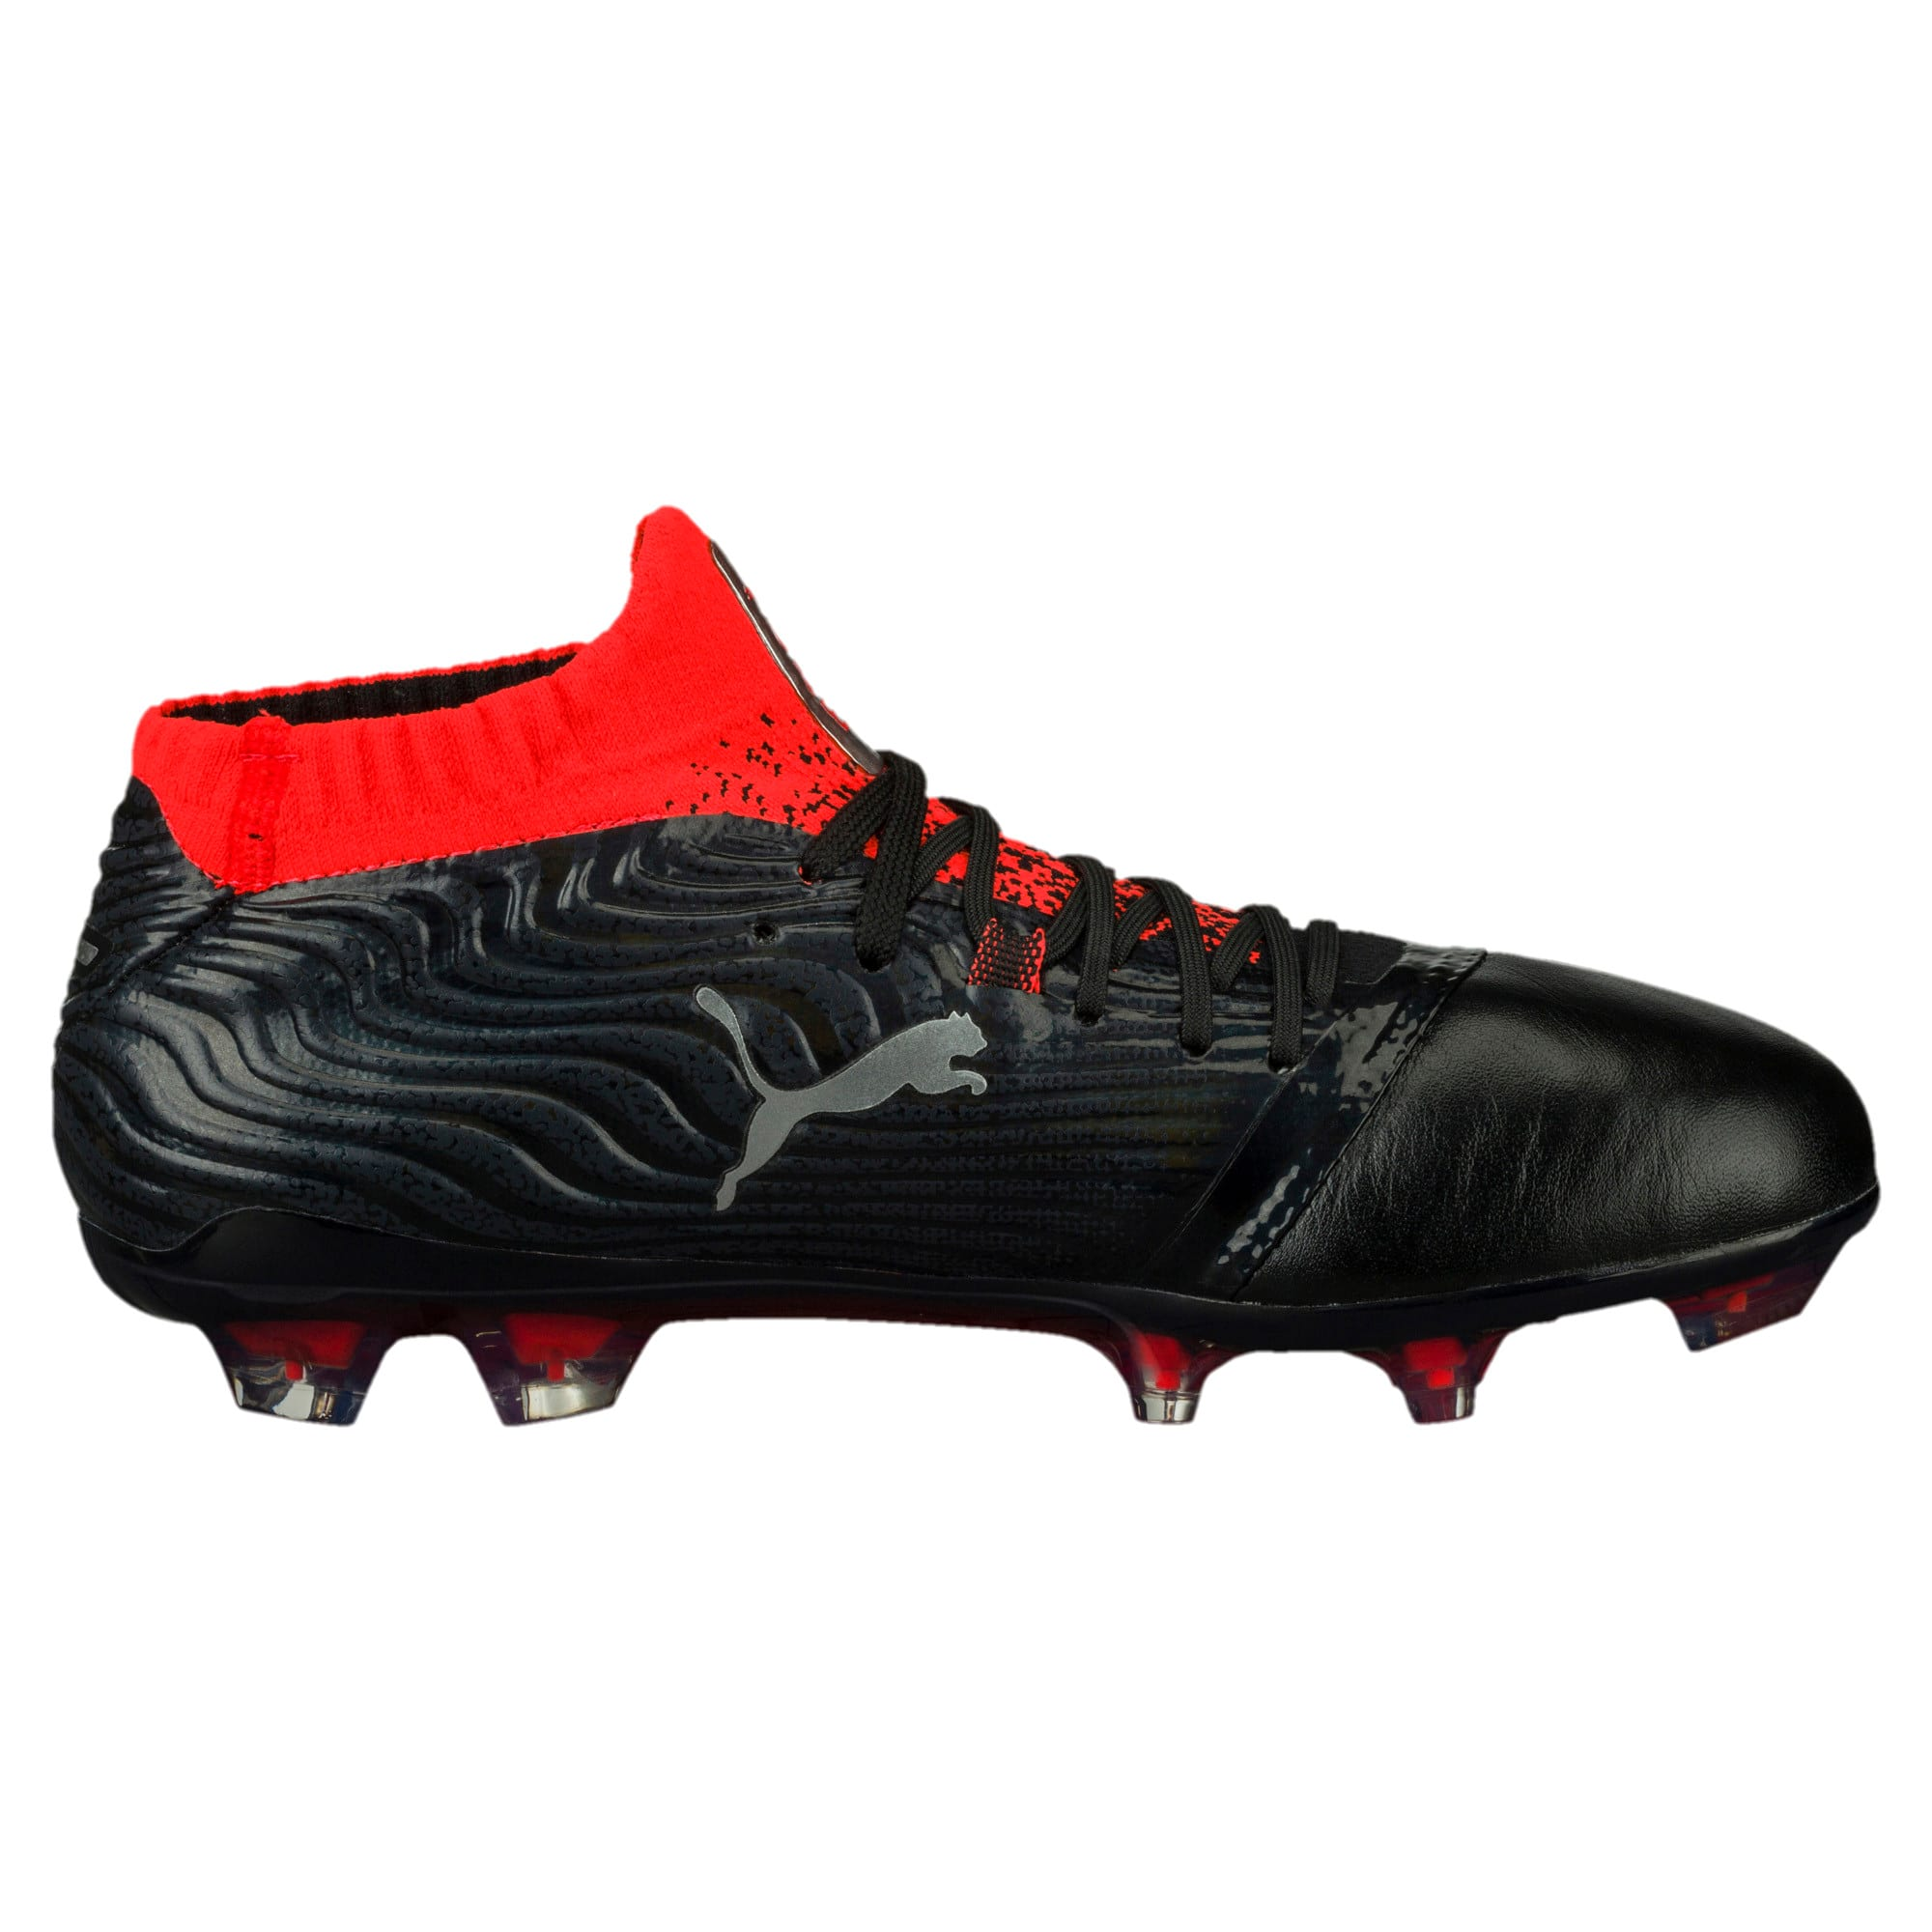 Thumbnail 3 of ONE 18.1 FG Soccer Cleats JR, Black-Silver-Red, medium